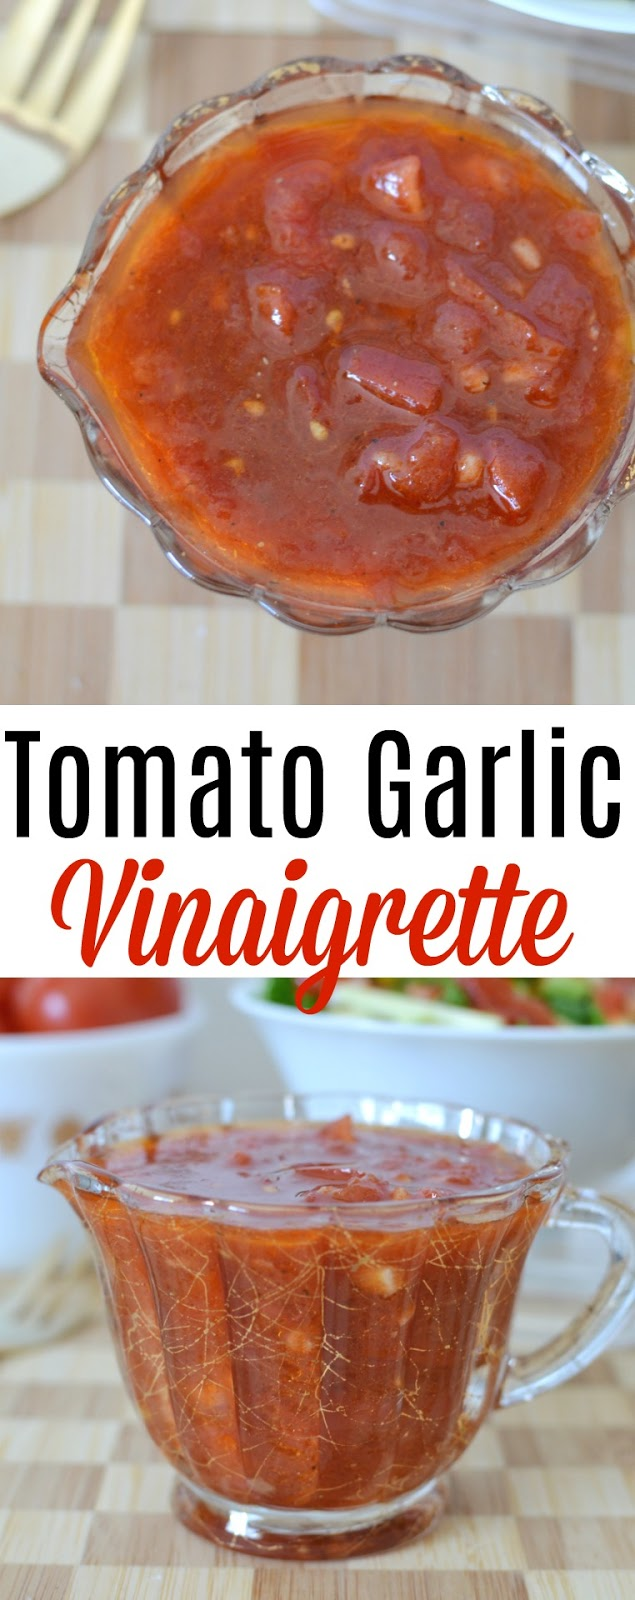 This summer tomato garlic salad dressing is perfect with lettuce salads, pasta salads and delicious drizzled over roasted vegetables! Skip the store bought stuff and make this instead!